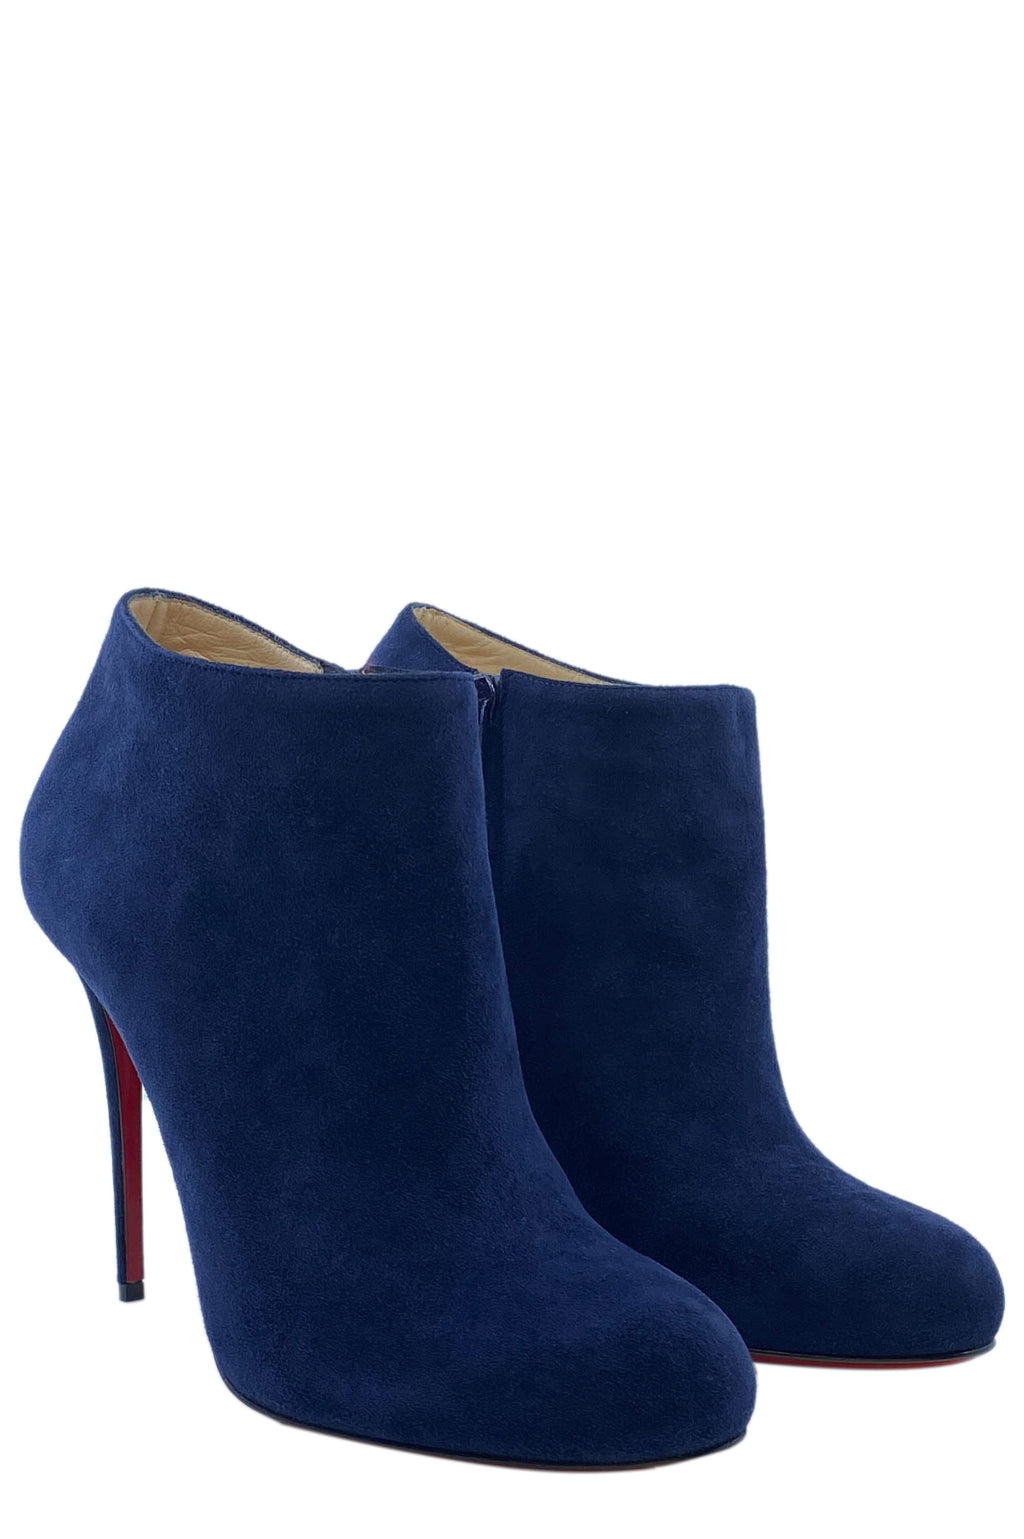 CHRISTIAN LOUBOUTIN Ankle Boots Suede Blue